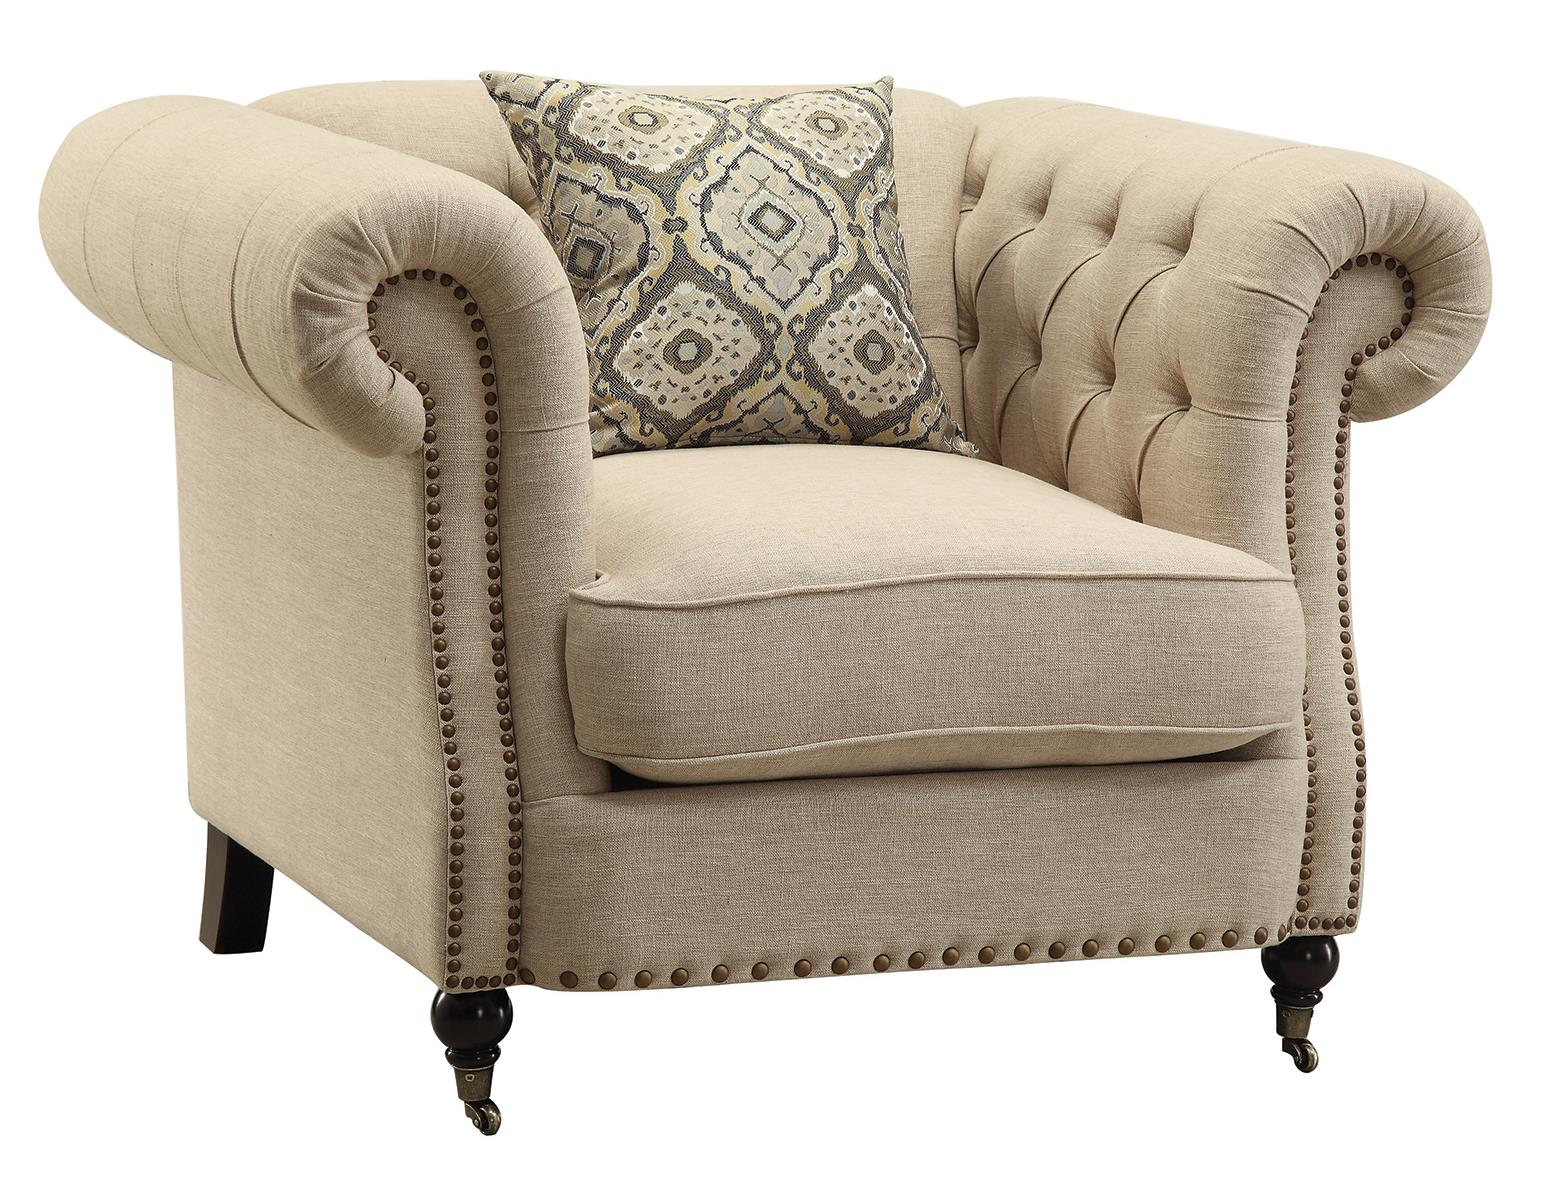 oversized upholstered chair wooden cushions coaster trivellato 505823 traditional button tufted